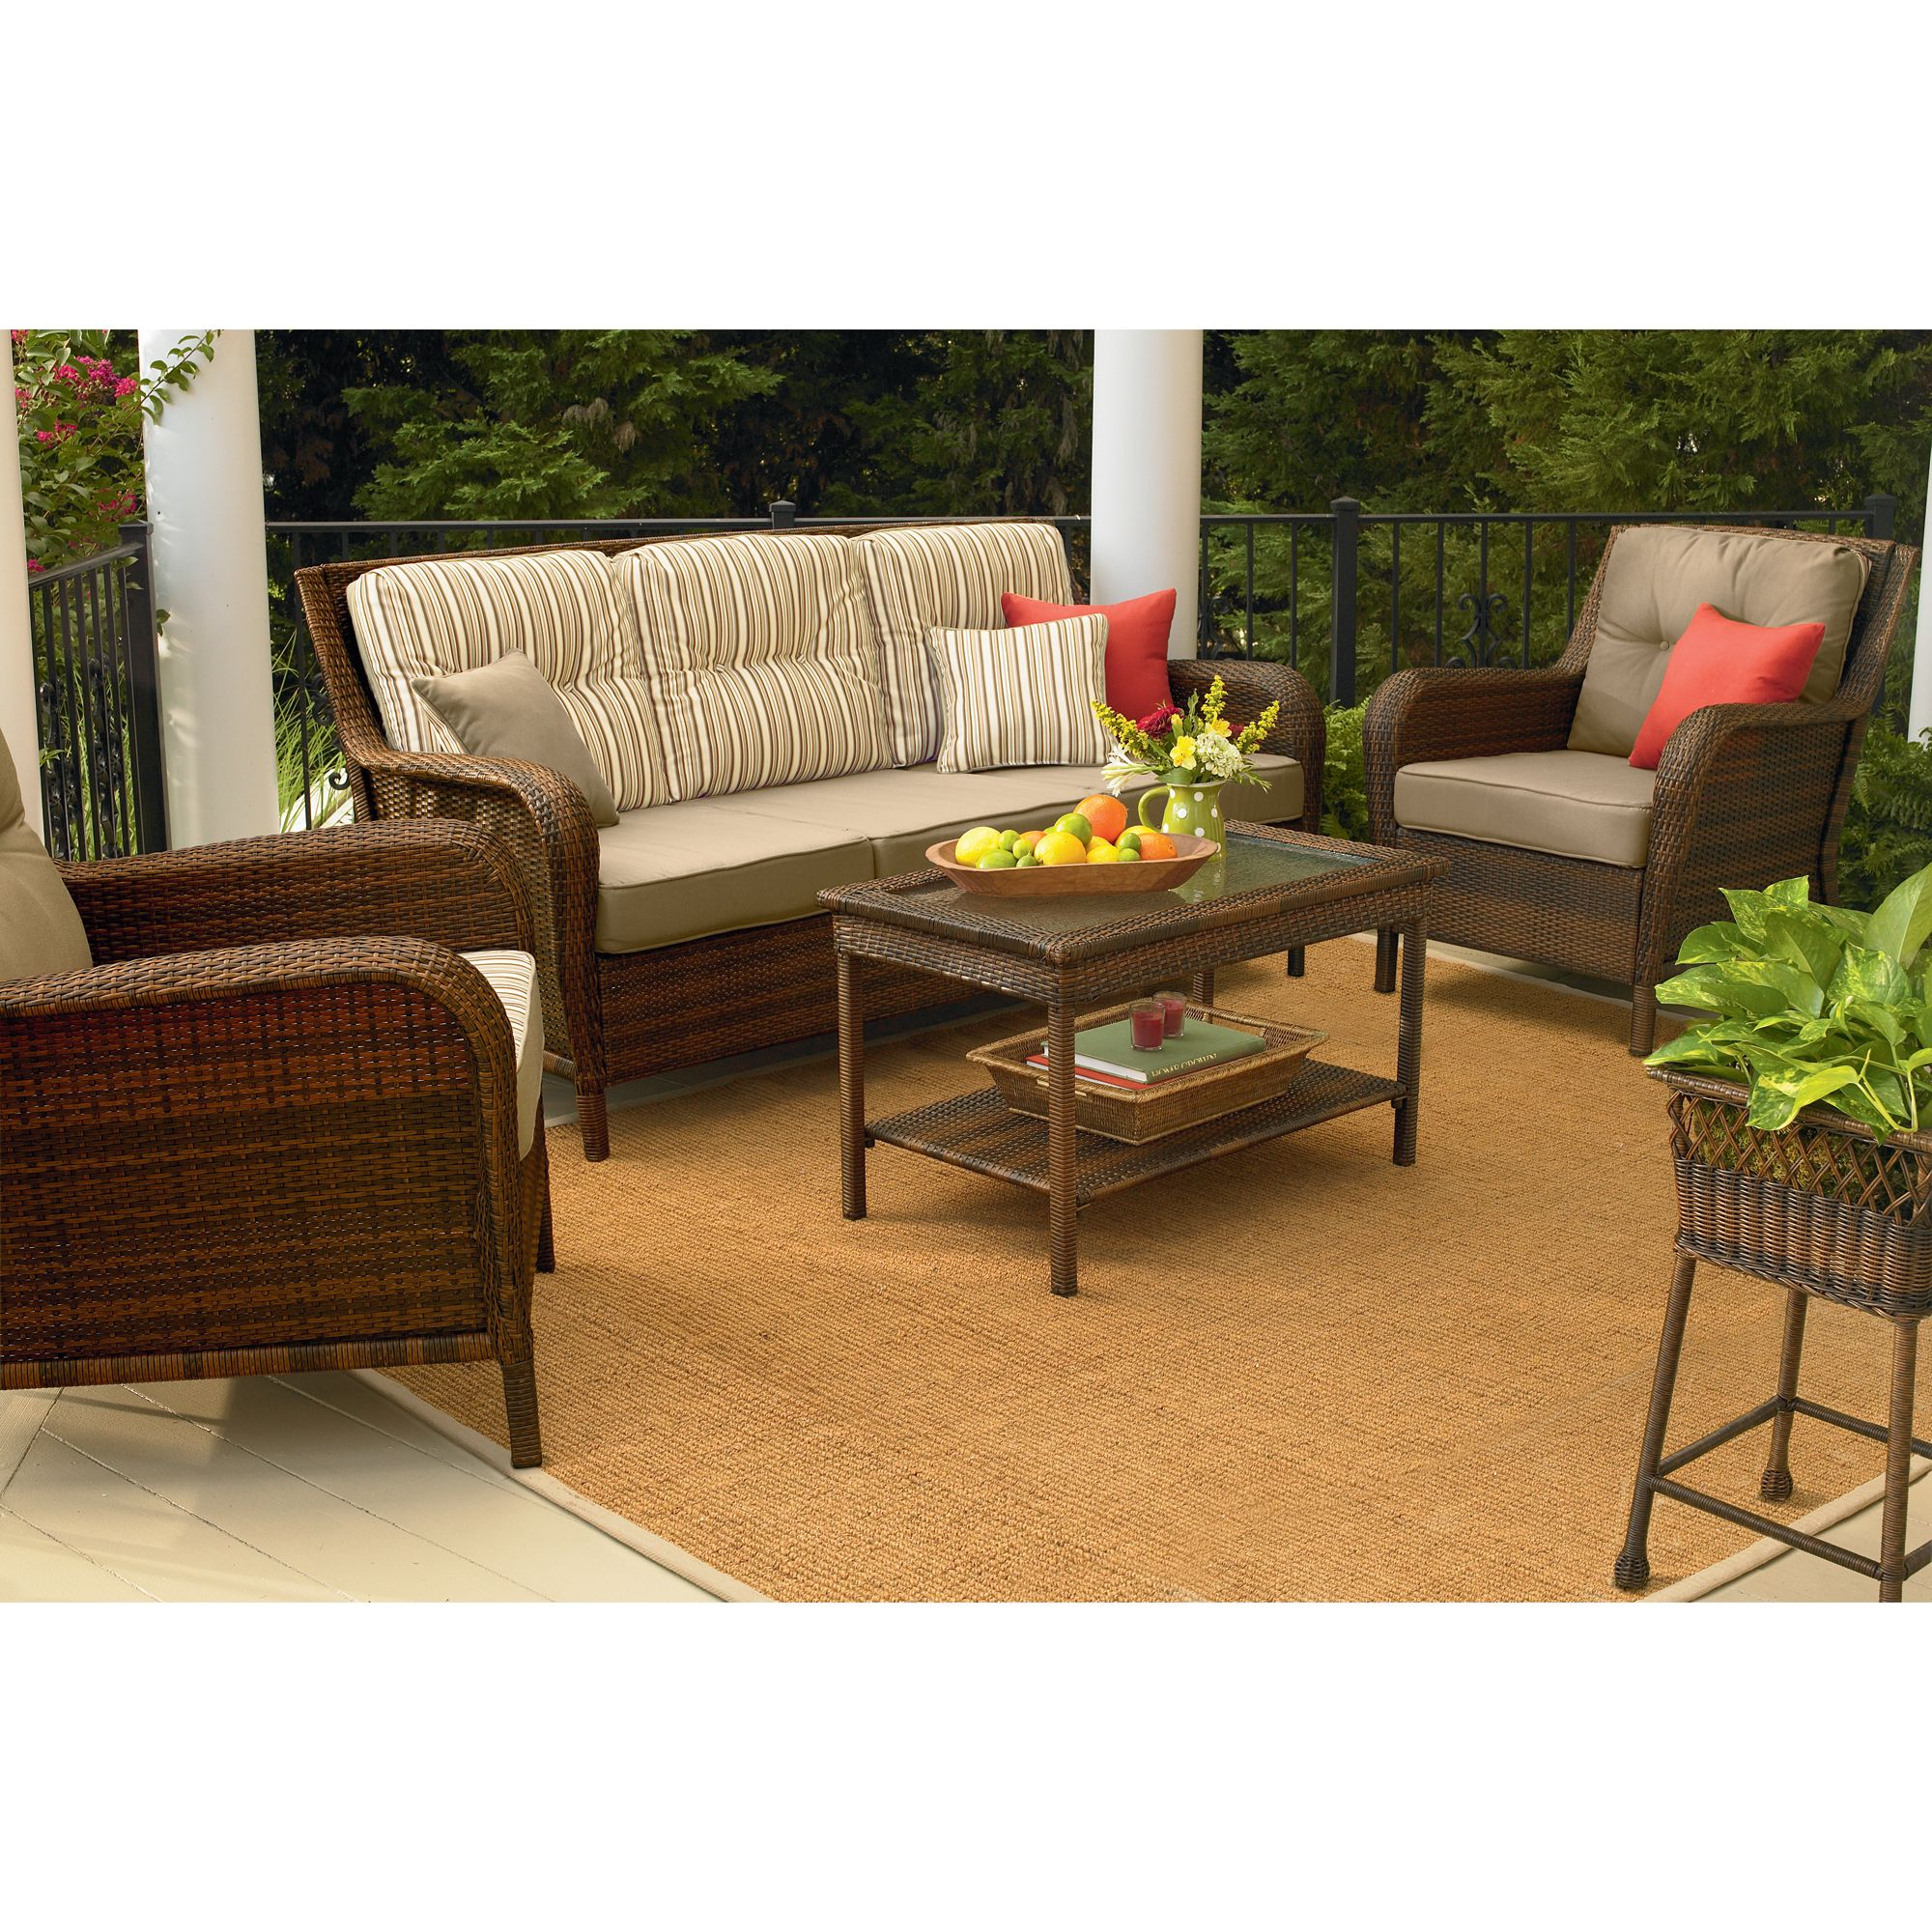 sears outdoor patio furniture Mayfield Wicker Patio Sofa: Transform Your Outdoor Style